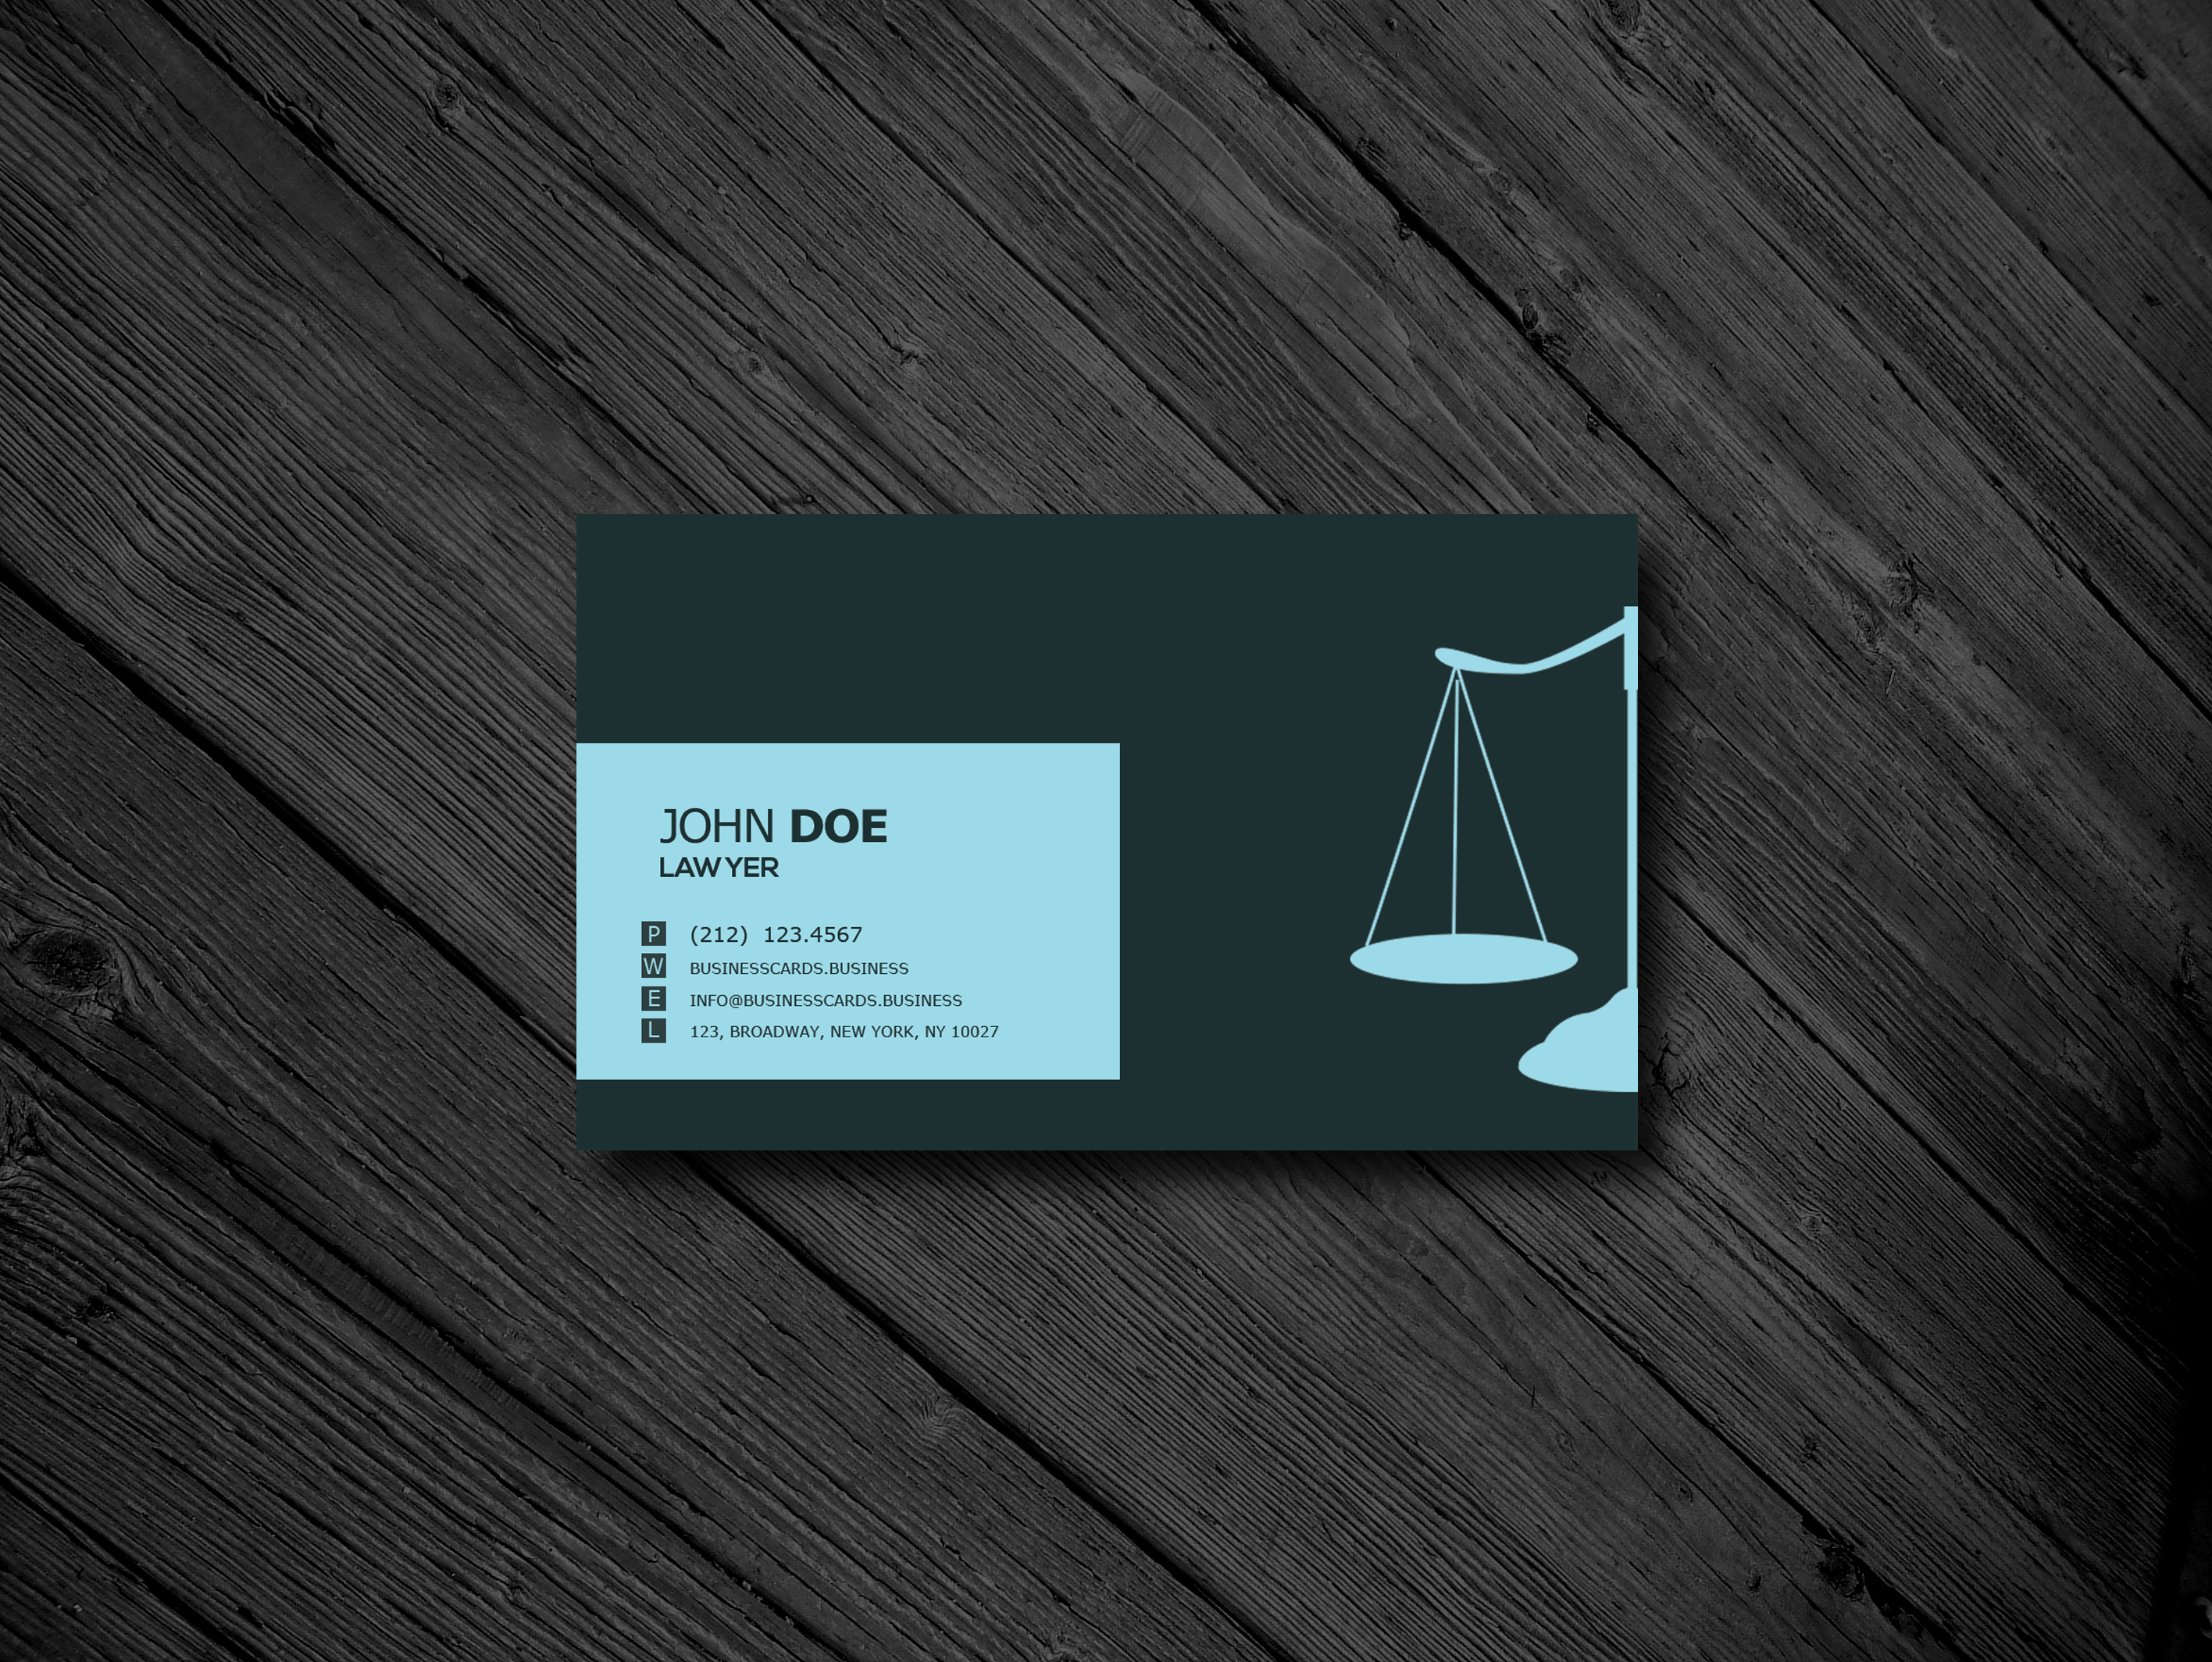 Free business card templates business cards templates free lawyer business card psd template accmission Images